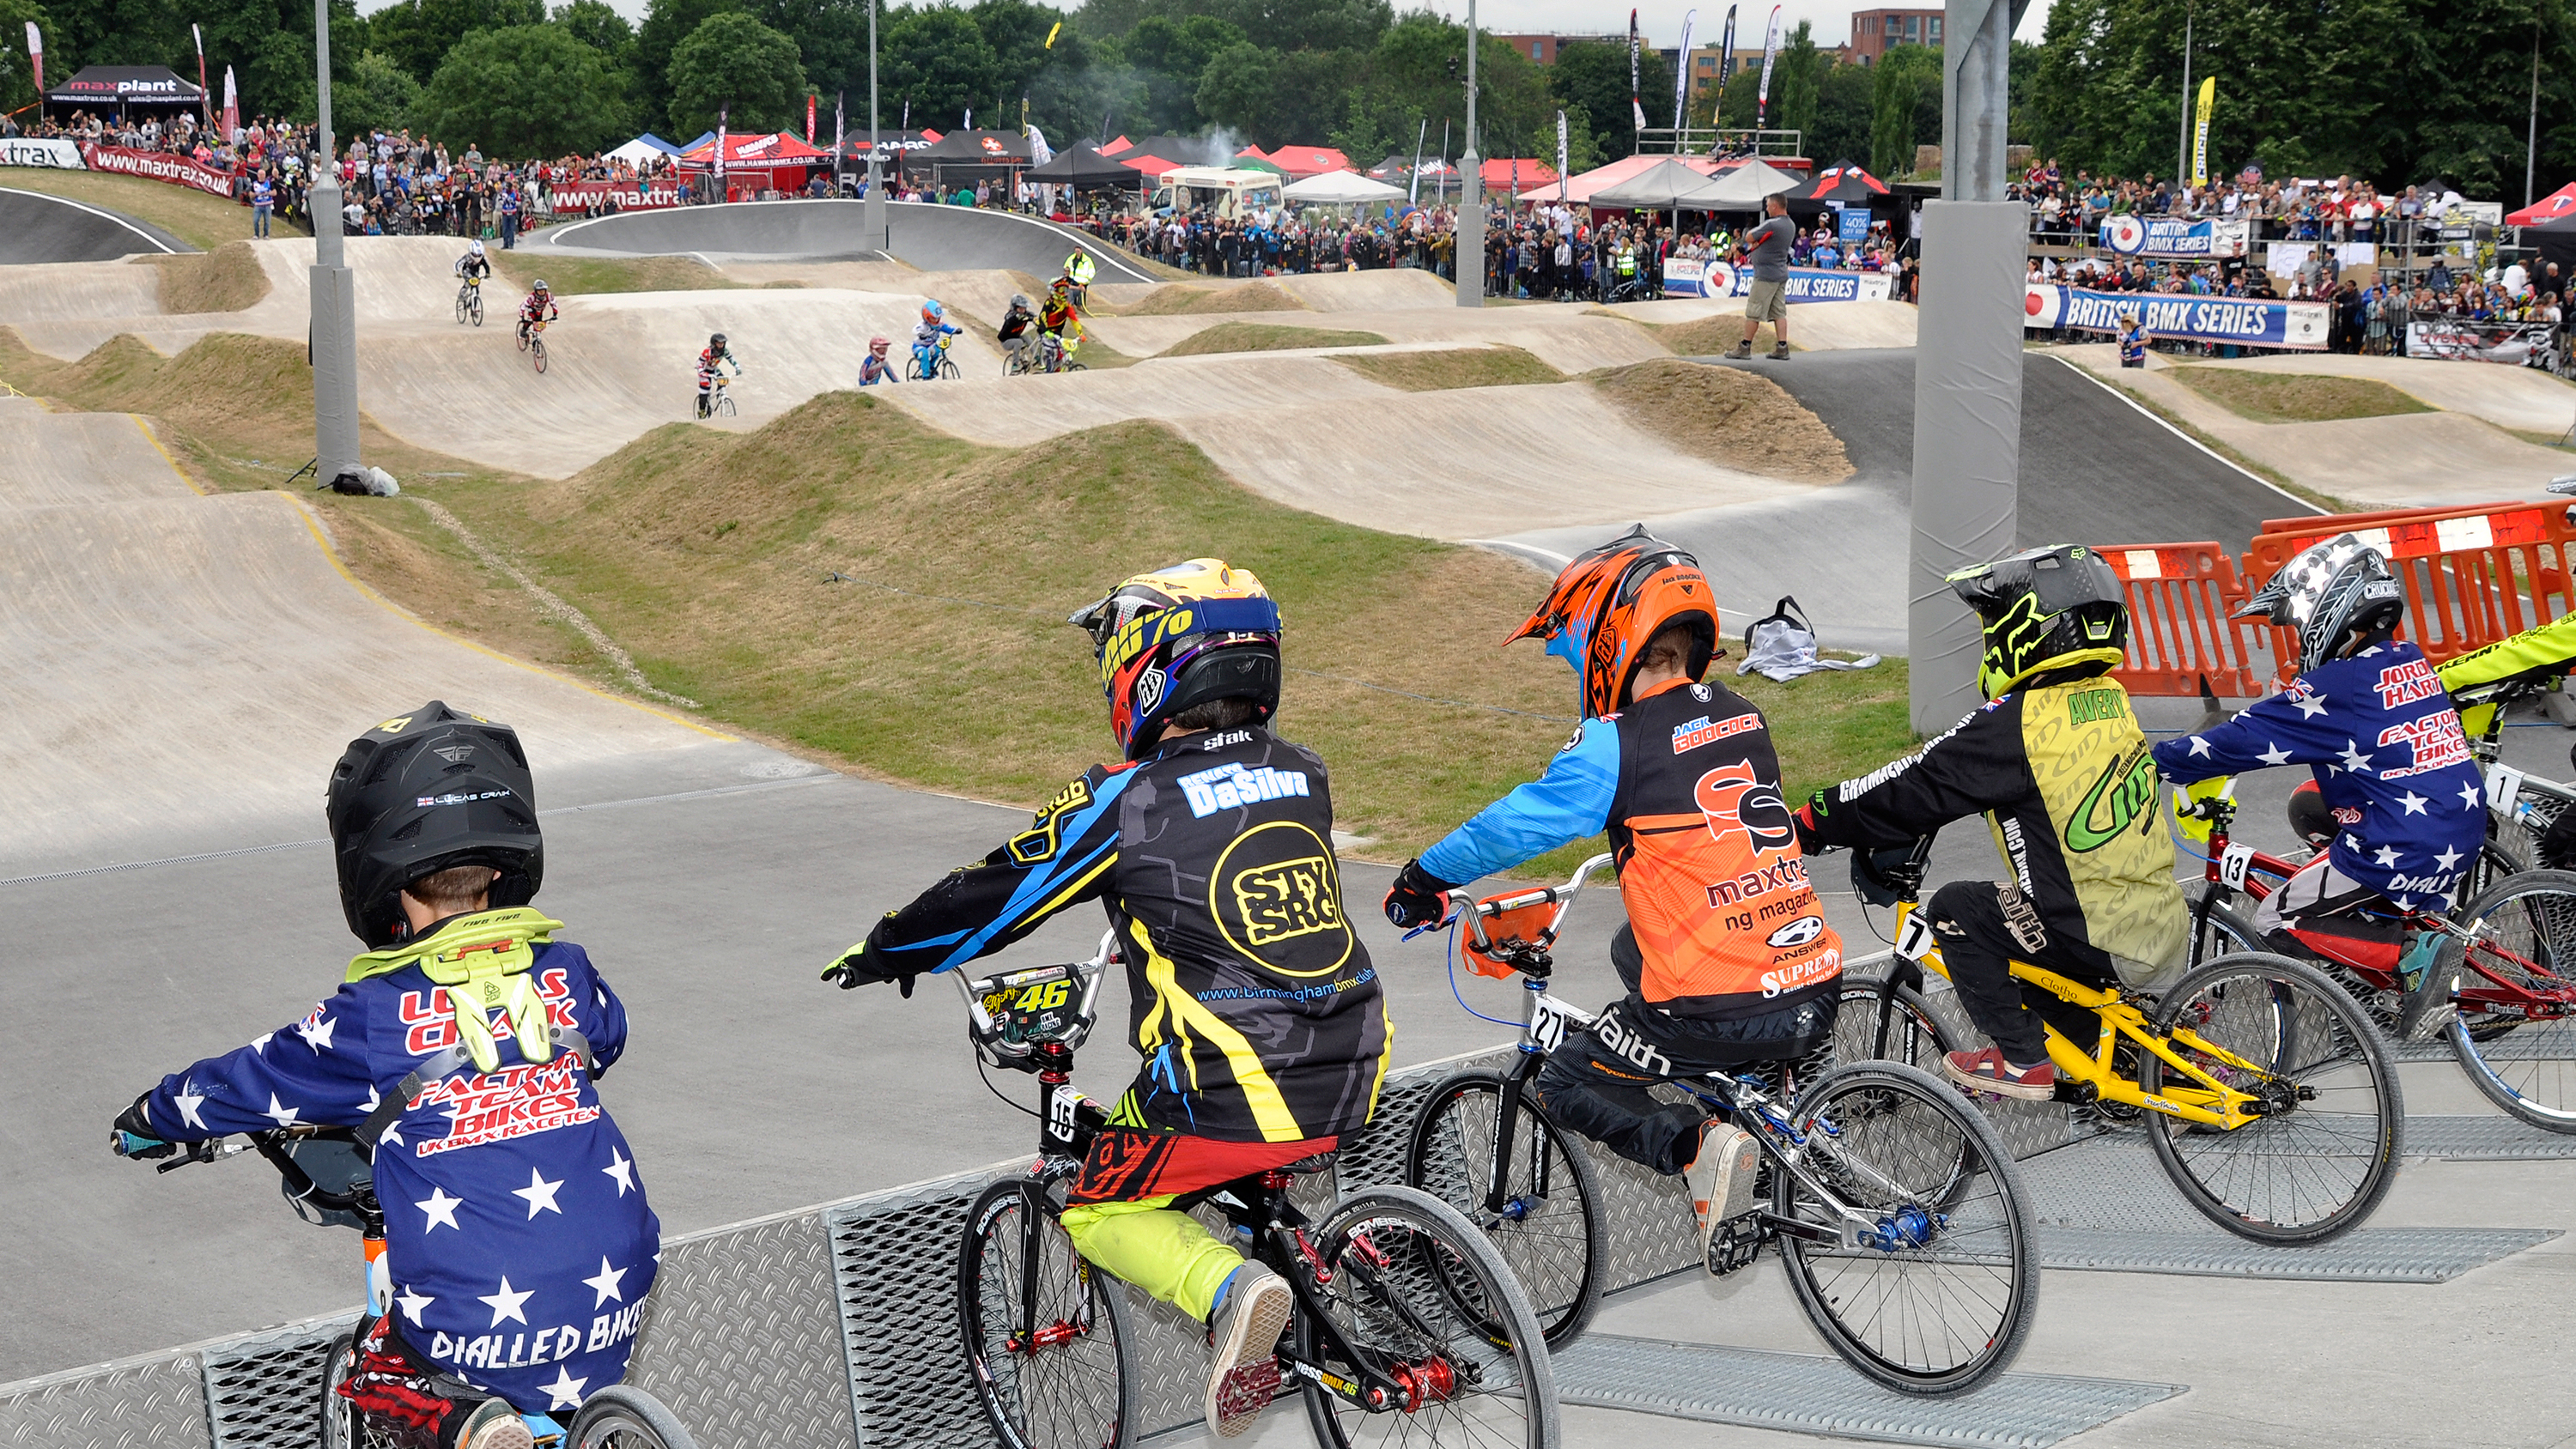 BMX riders wait to start at Peckham track